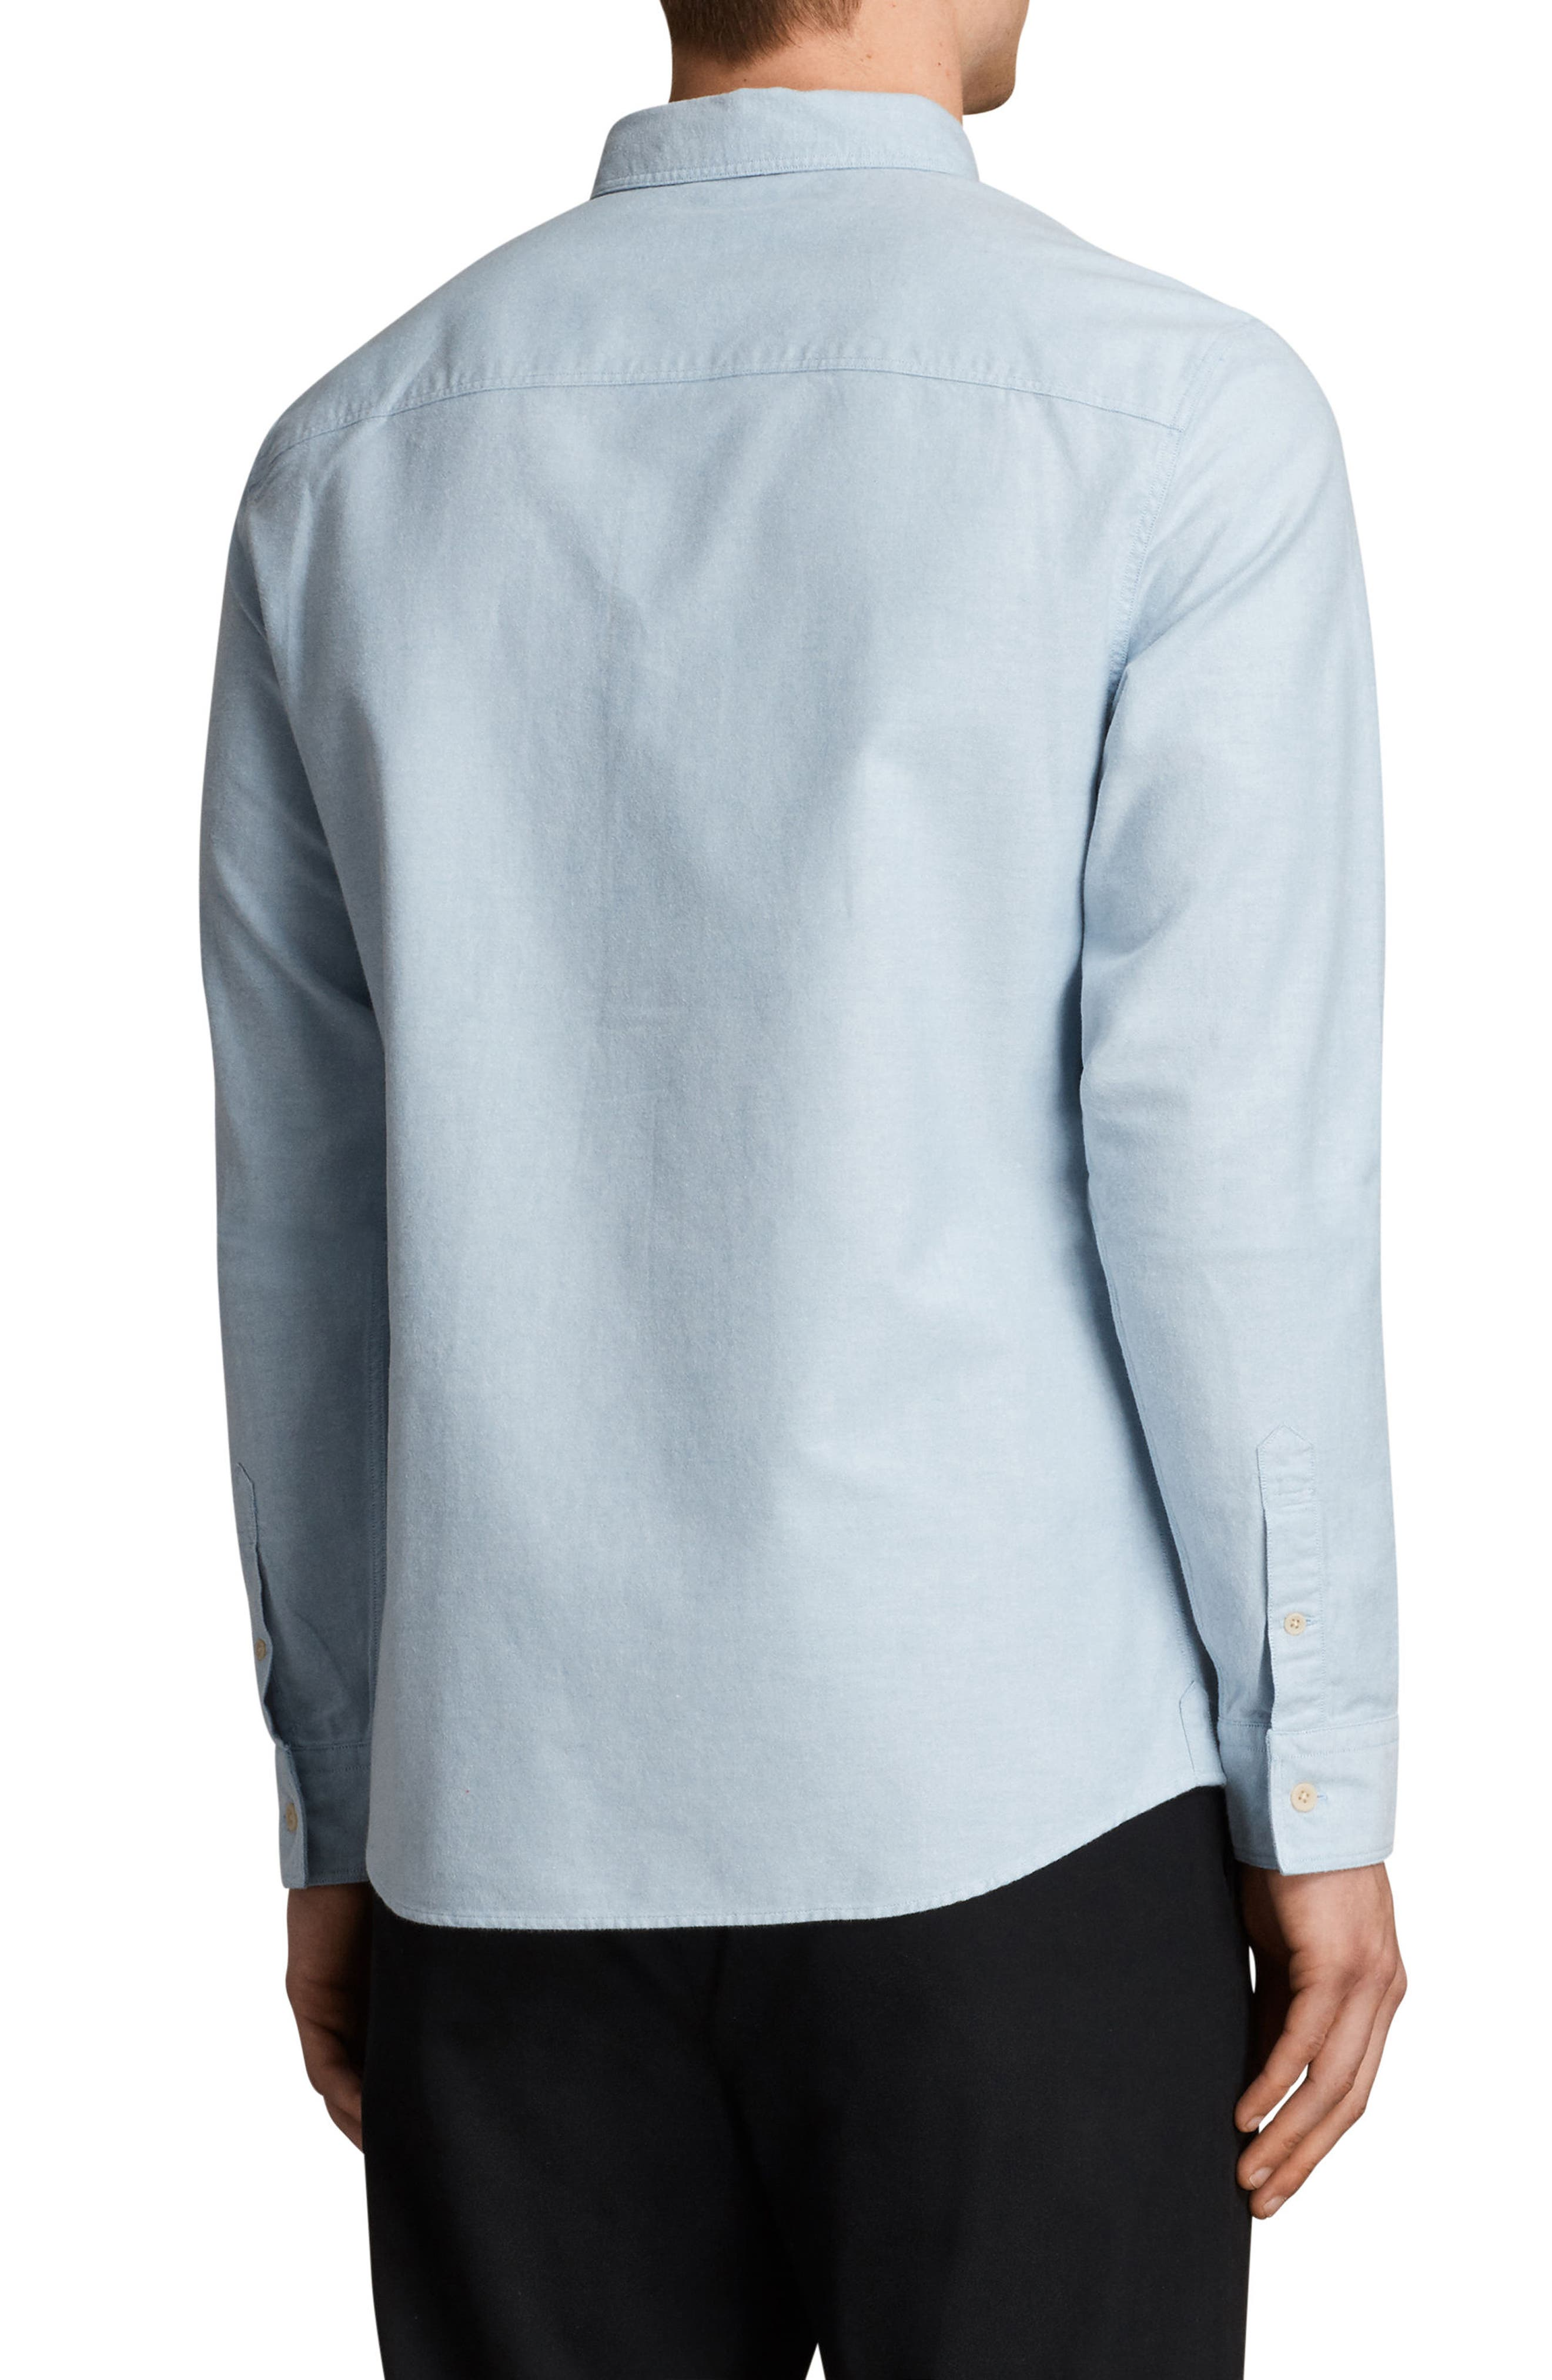 Huntington Regular Fit Sport Shirt,                             Alternate thumbnail 2, color,                             Light Blue